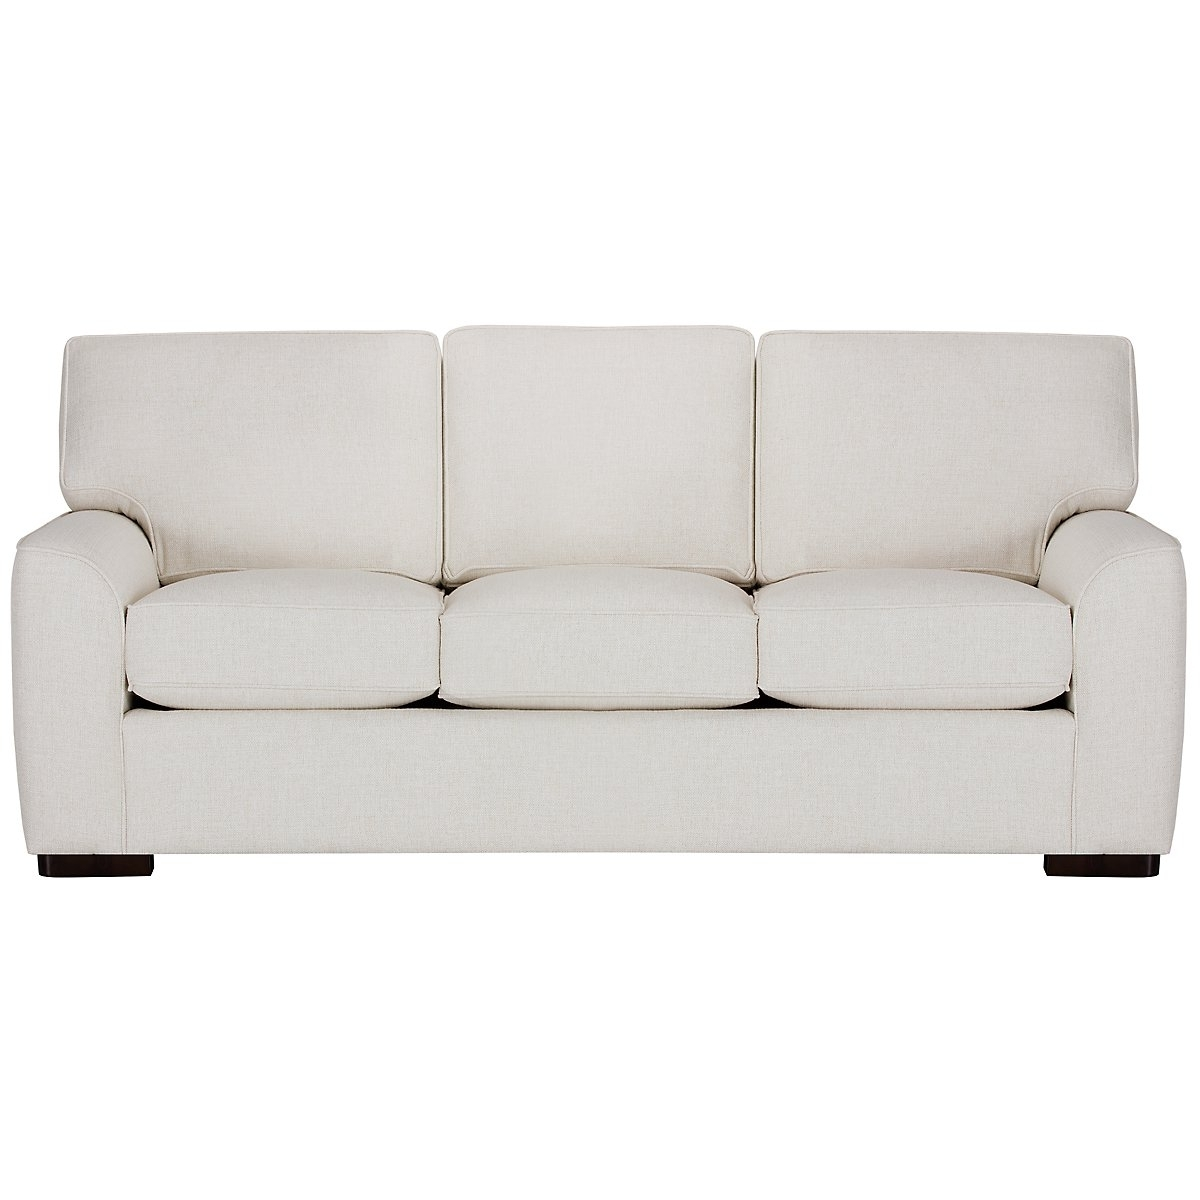 Most Current Lovely White Sofa Chair 22 With Additional Sofa Room Ideas With Regarding White Sofa Chairs (View 8 of 20)